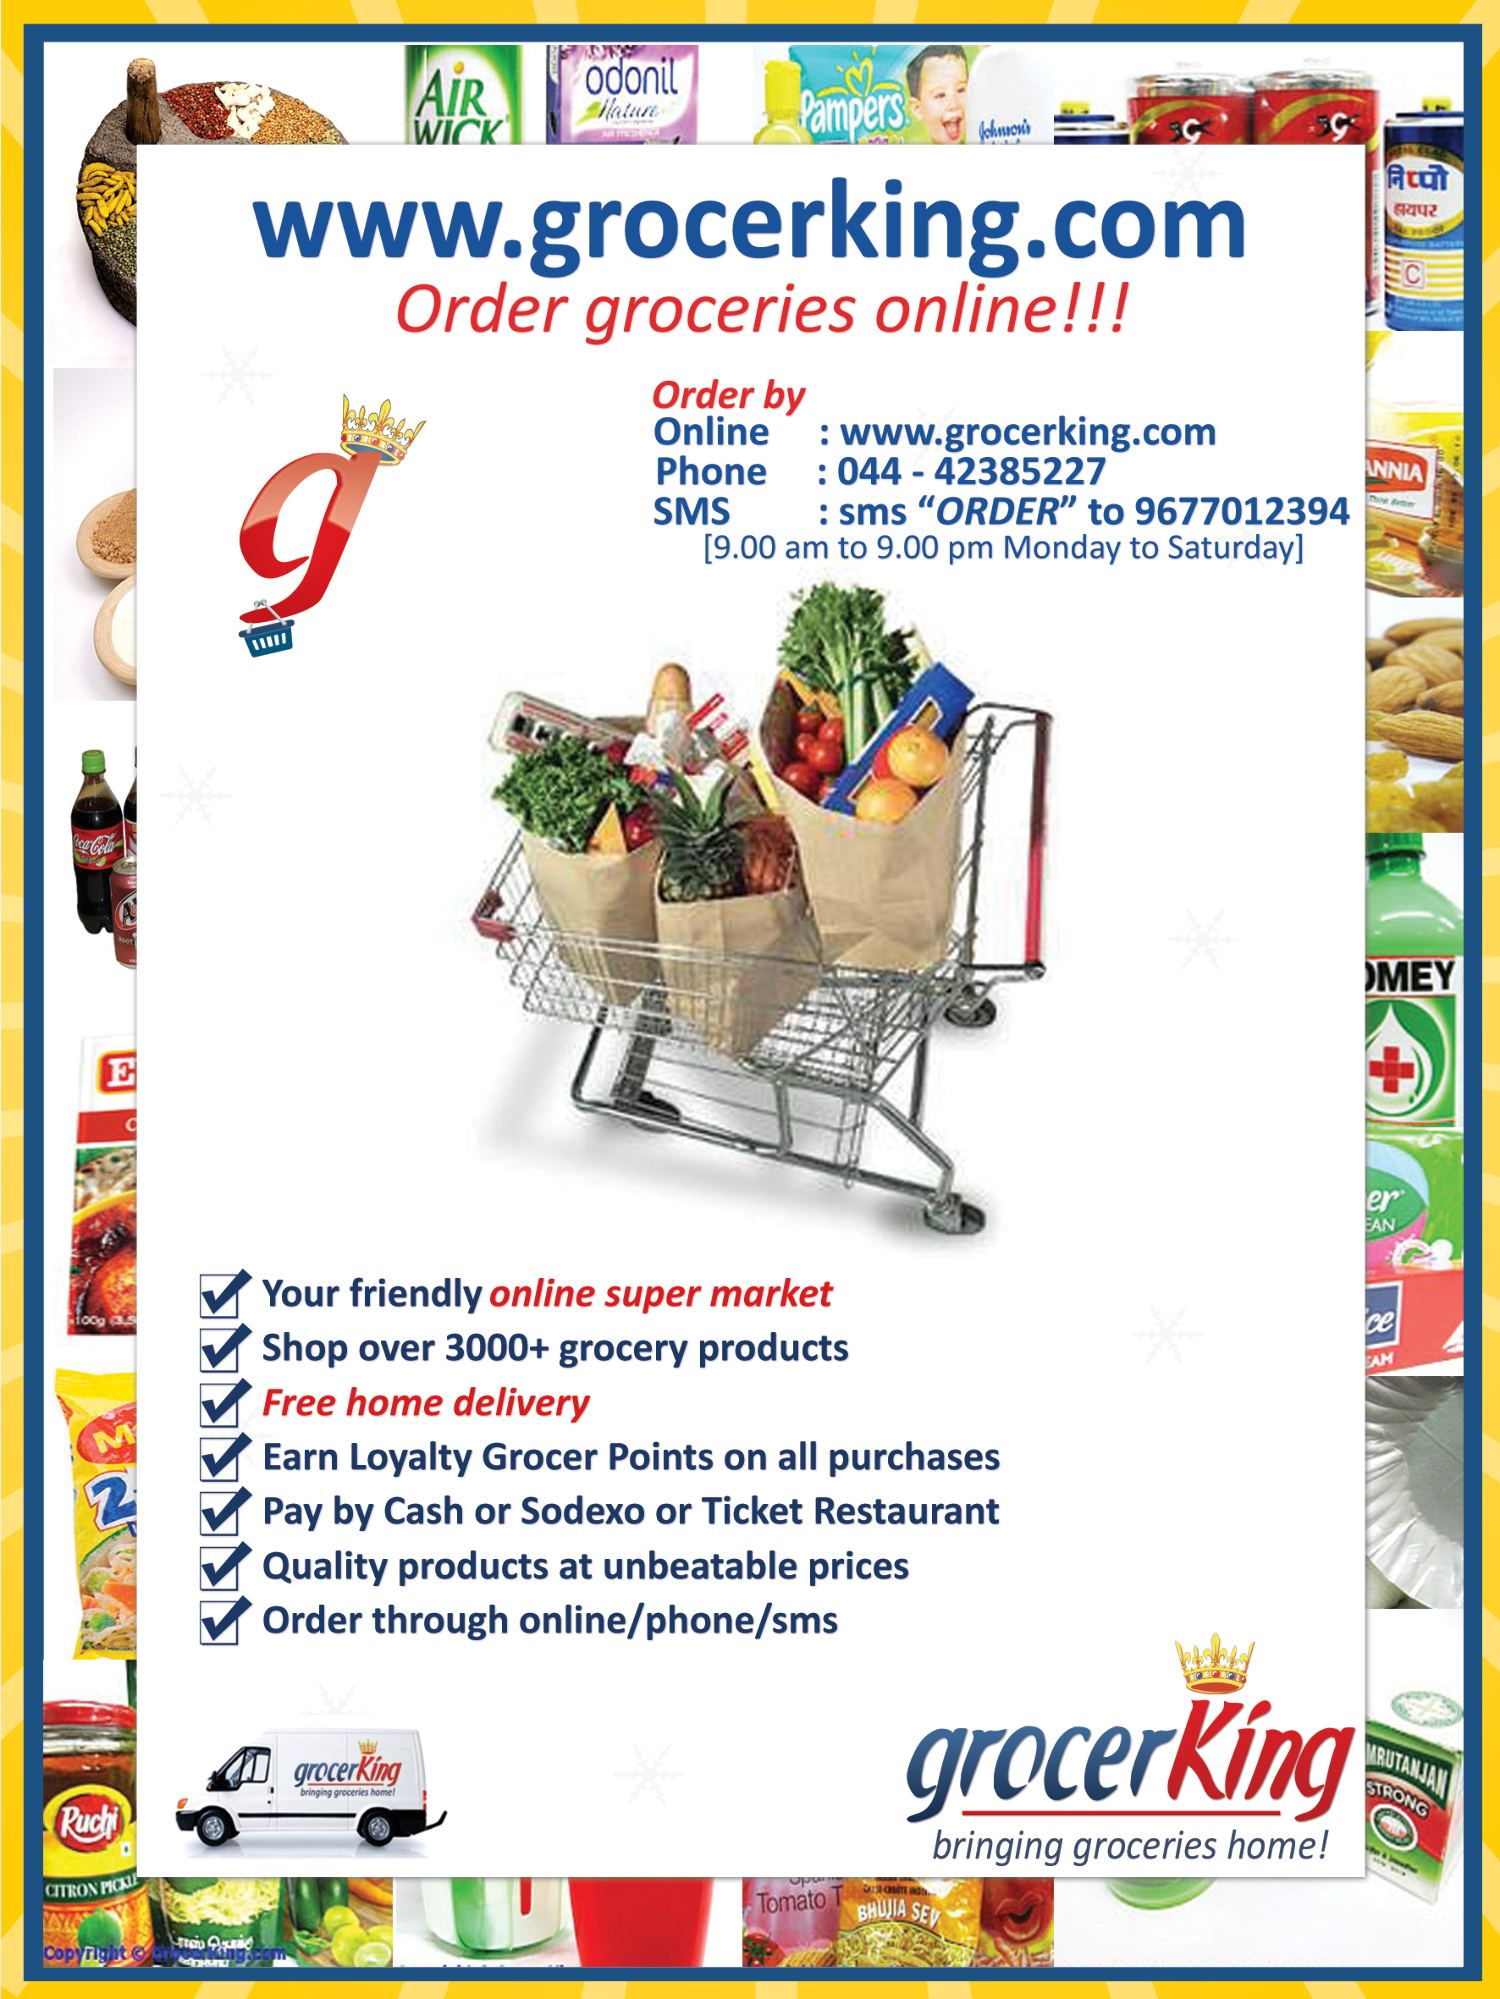 Online Grocery Supermarket Chennai : grocerking on Rediff Pages